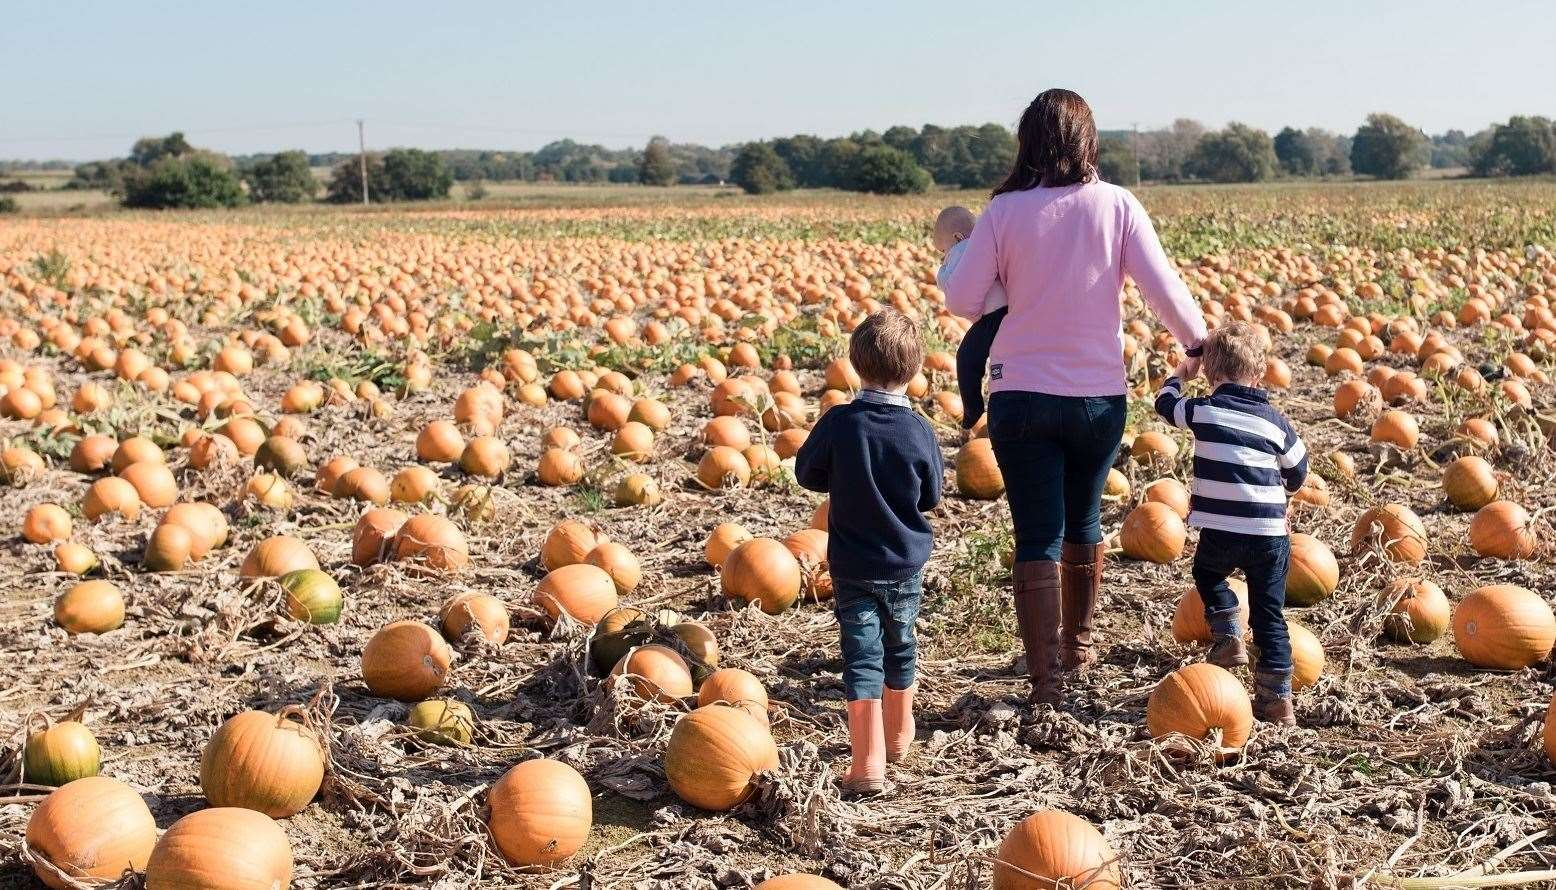 Pick your own pumpkin at Sevington, Ashford Picture: Inga Keyes